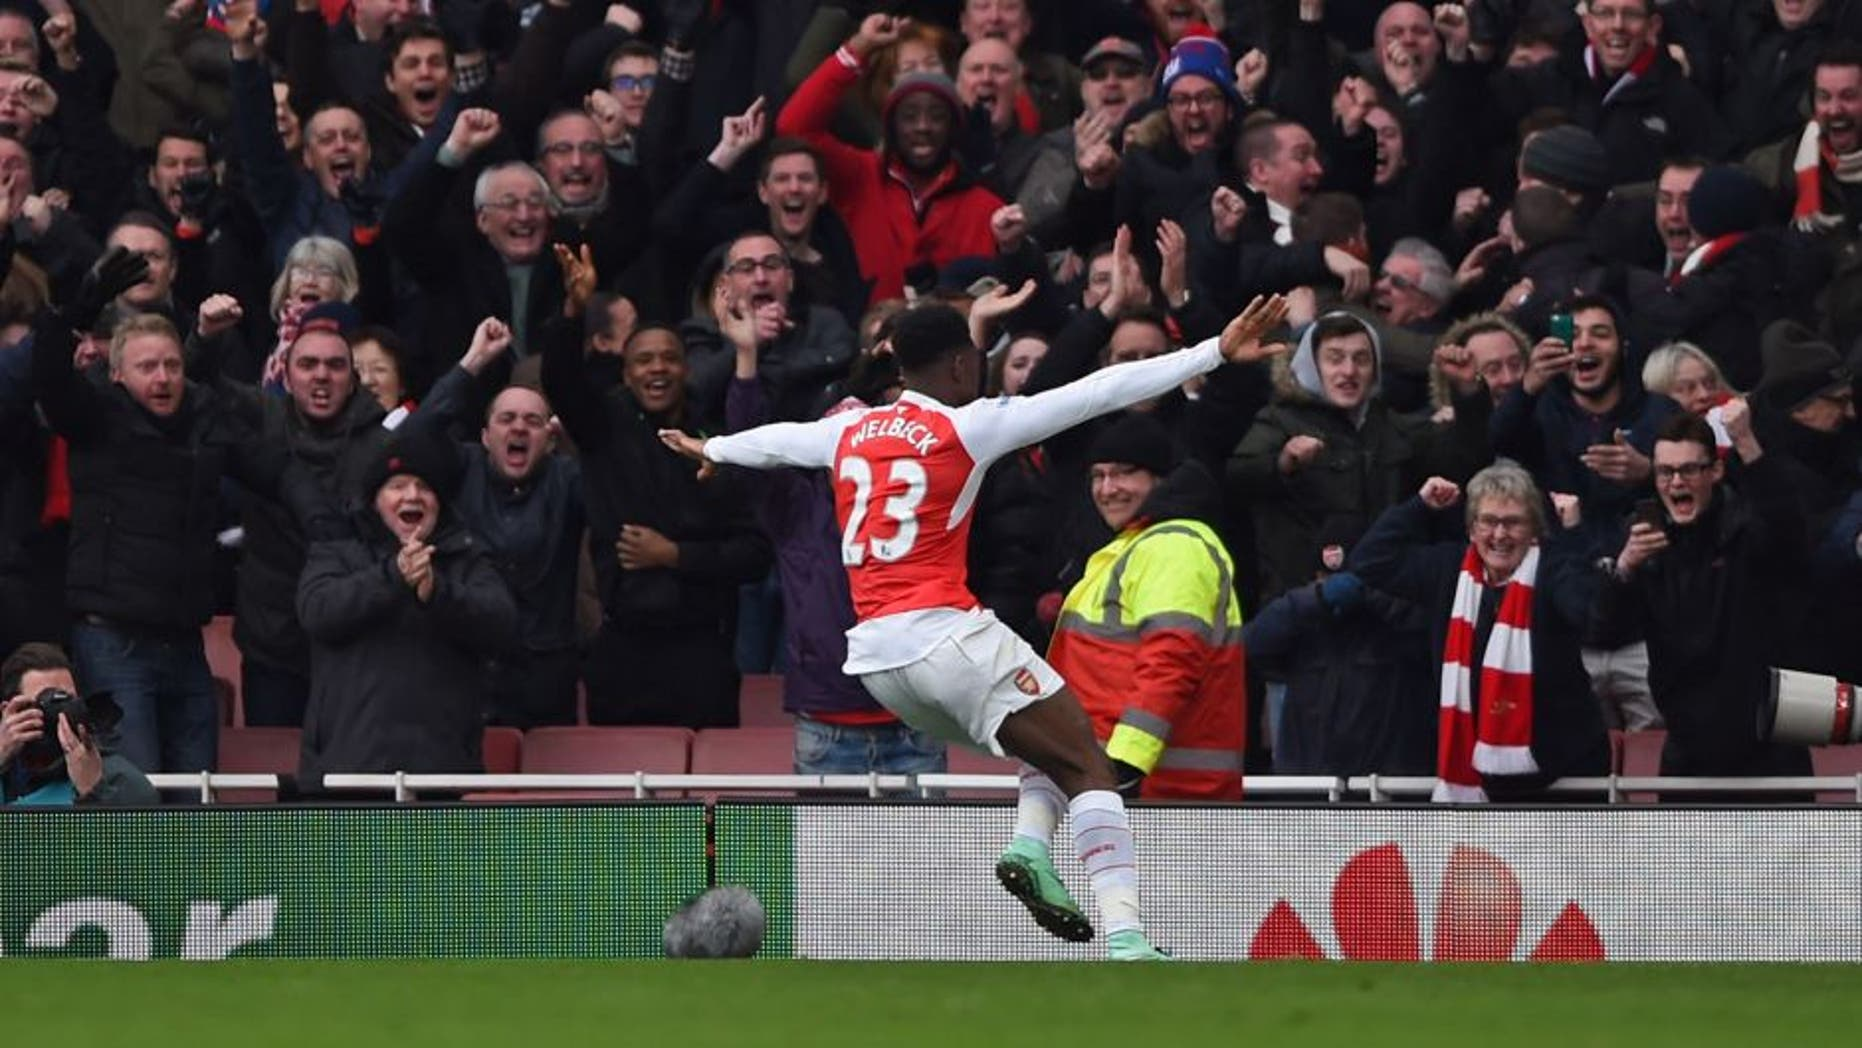 "Football Soccer - Arsenal v Leicester City - Barclays Premier League - Emirates Stadium - 14/2/16 Arsenal's Danny Welbeck celebrates scoring their second goal Action Images via Reuters / Tony O'Brien Livepic EDITORIAL USE ONLY. No use with unauthorized audio, video, data, fixture lists, club/league logos or ""live"" services. Online in-match use limited to 45 images, no video emulation. No use in betting, games or single club/league/player publications. Please contact your account representative for further details."